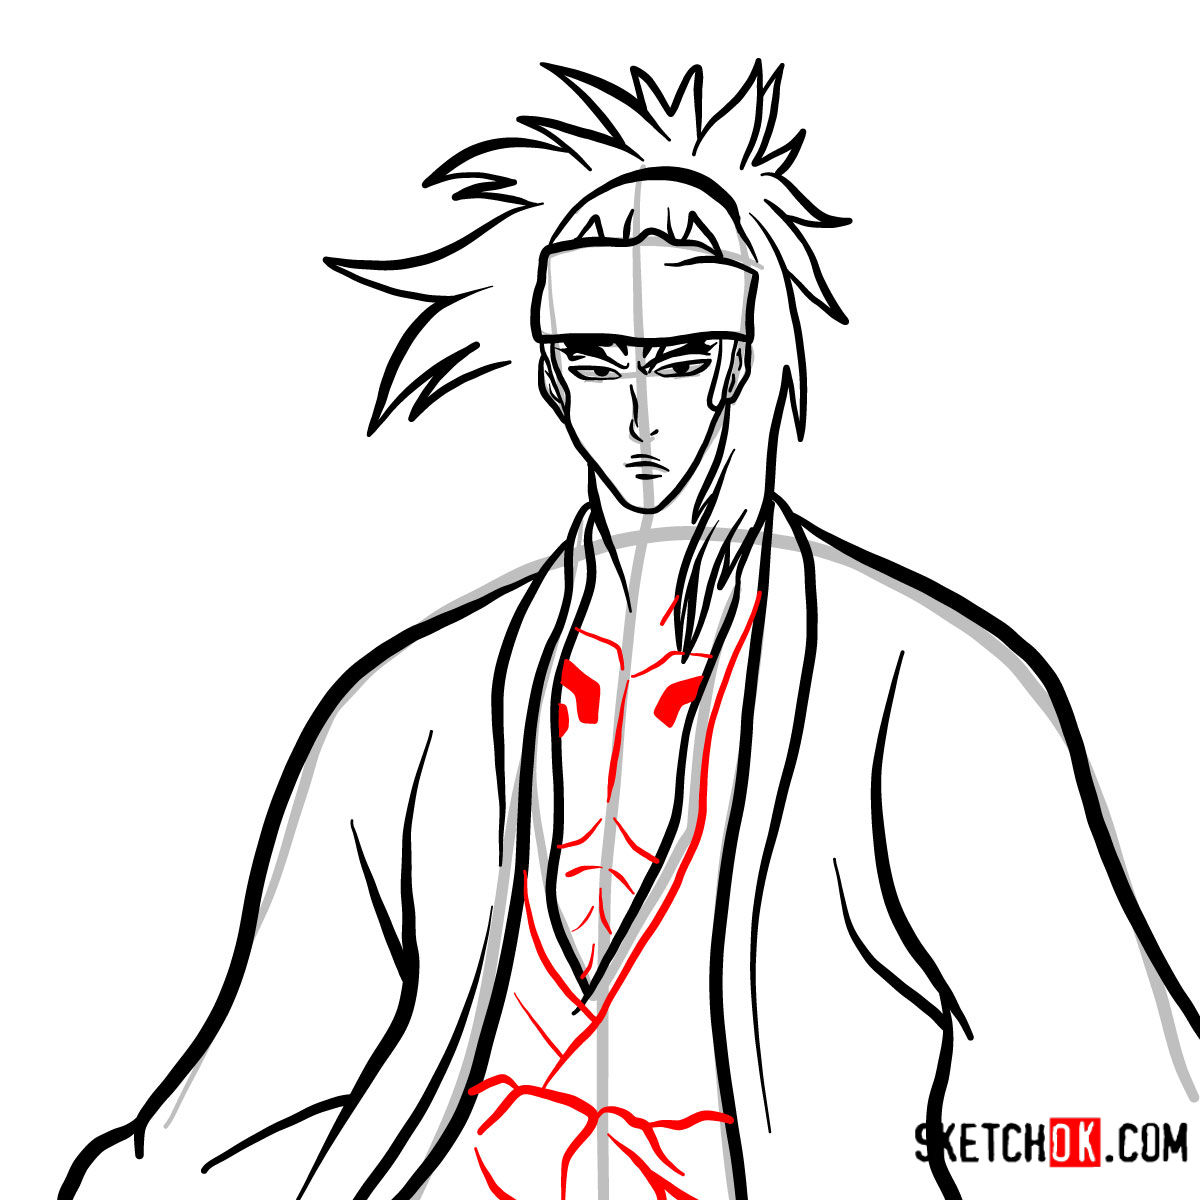 How to draw Renji Abarai's portrait | Bleach - step 10